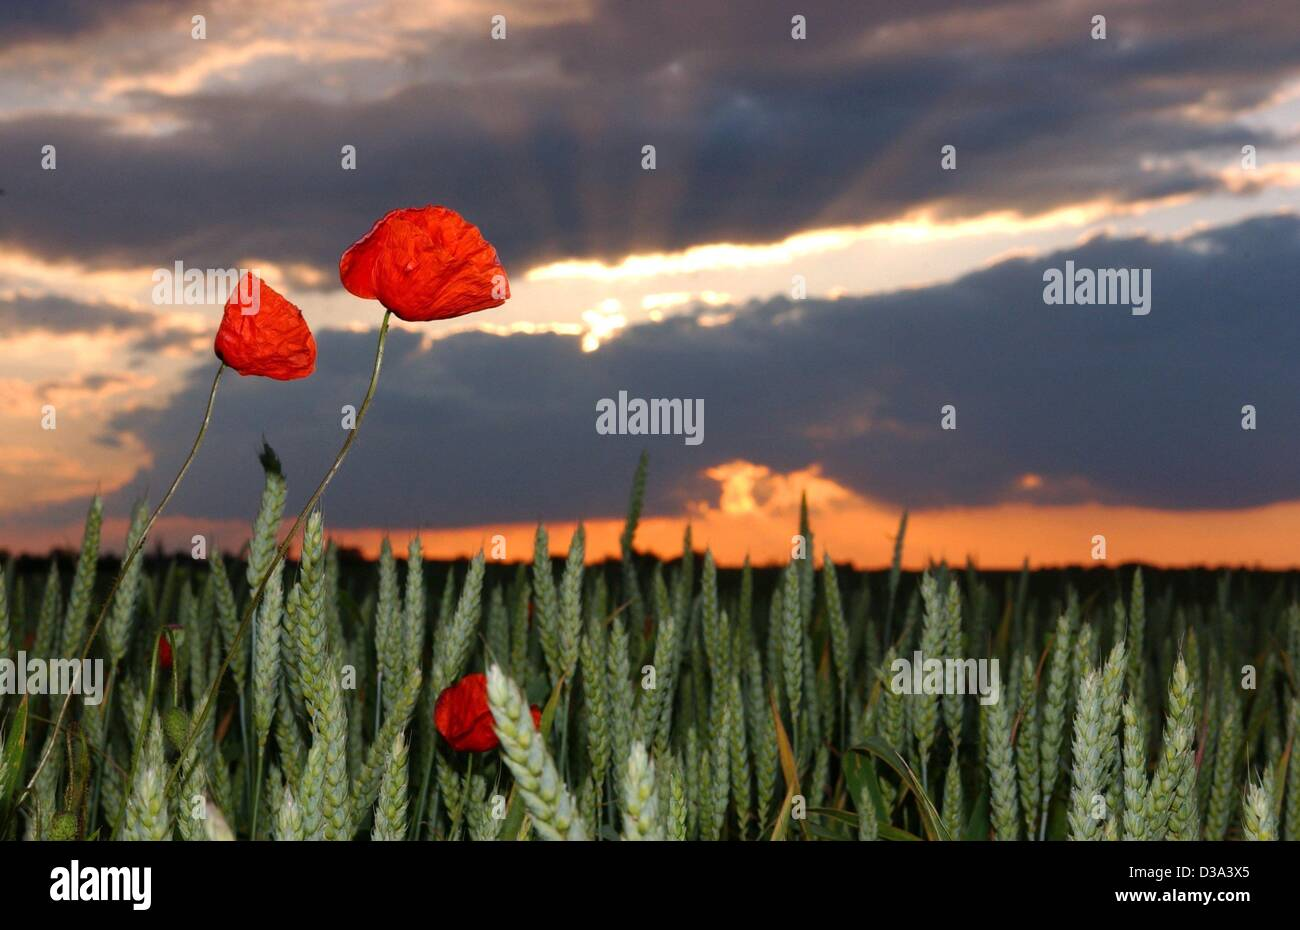 (dpa) - Sunset with red sky over a field with poppies in Dolgelin, Germany, 11 June 2002. Stock Photo